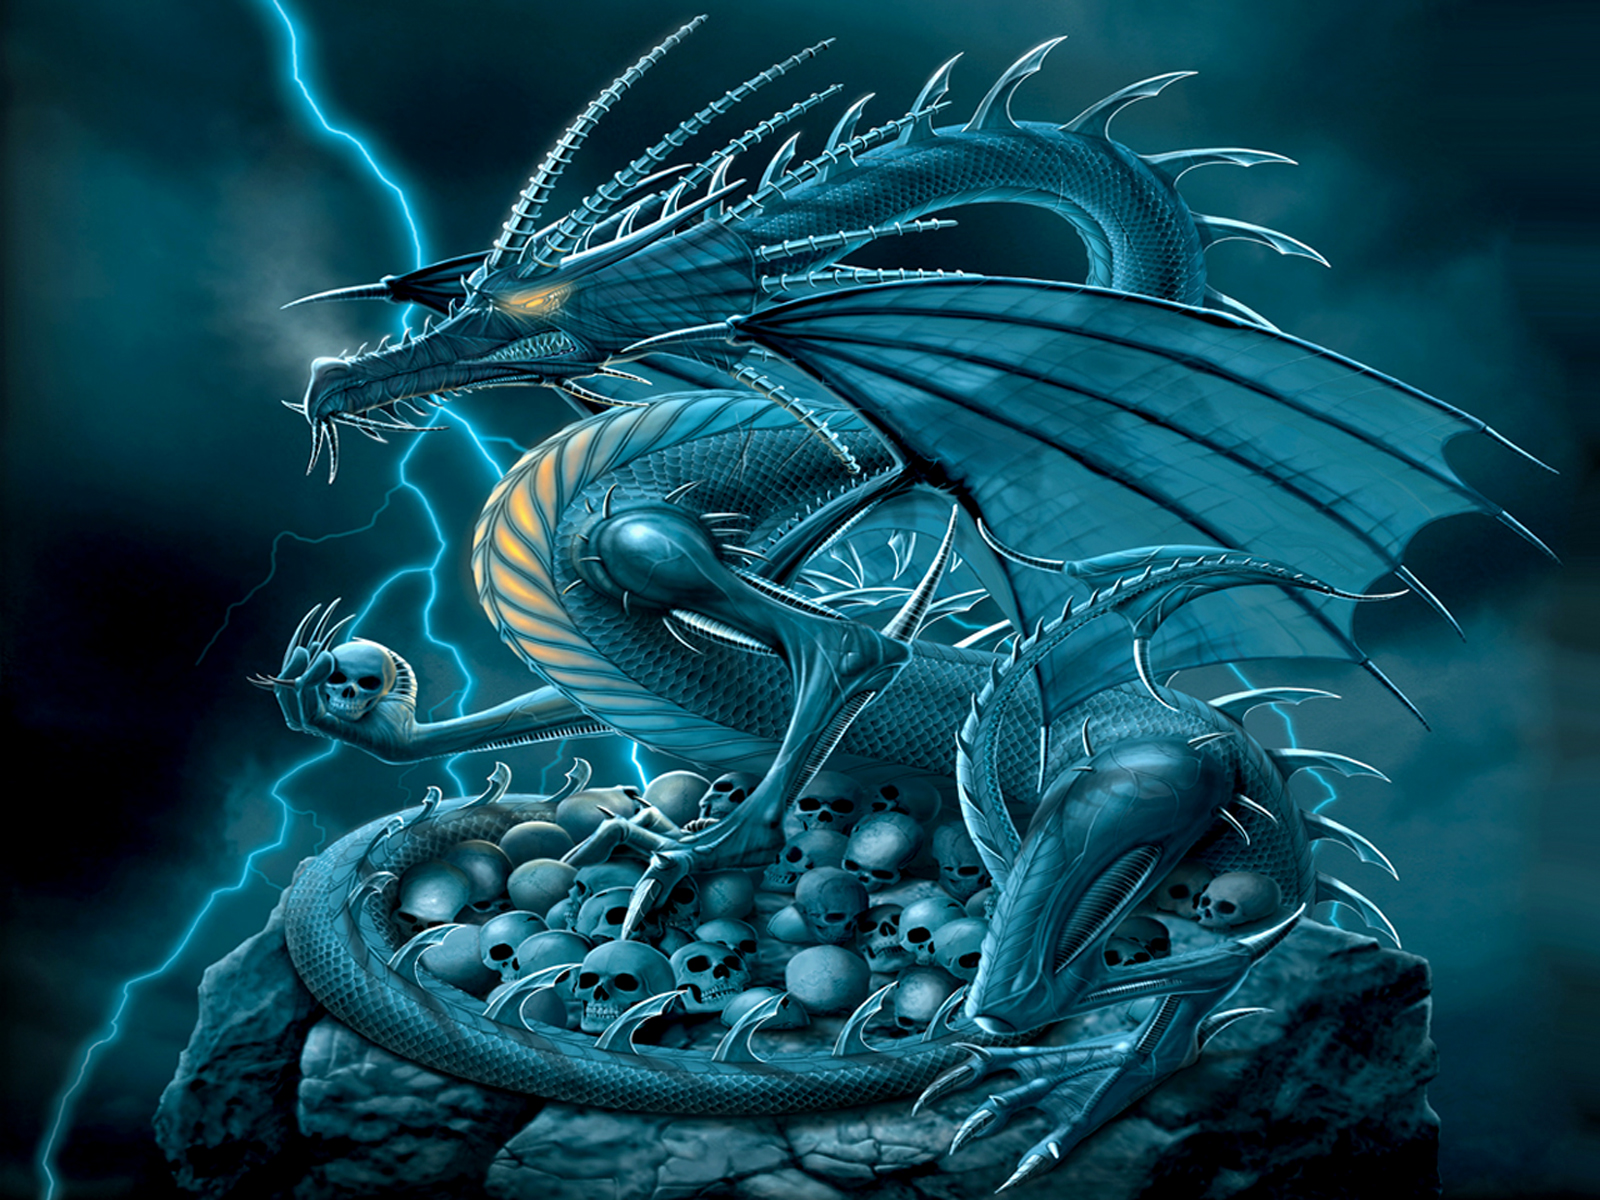 Cool Dragon HD Wallpaper Backgrounds Download 1600x1200